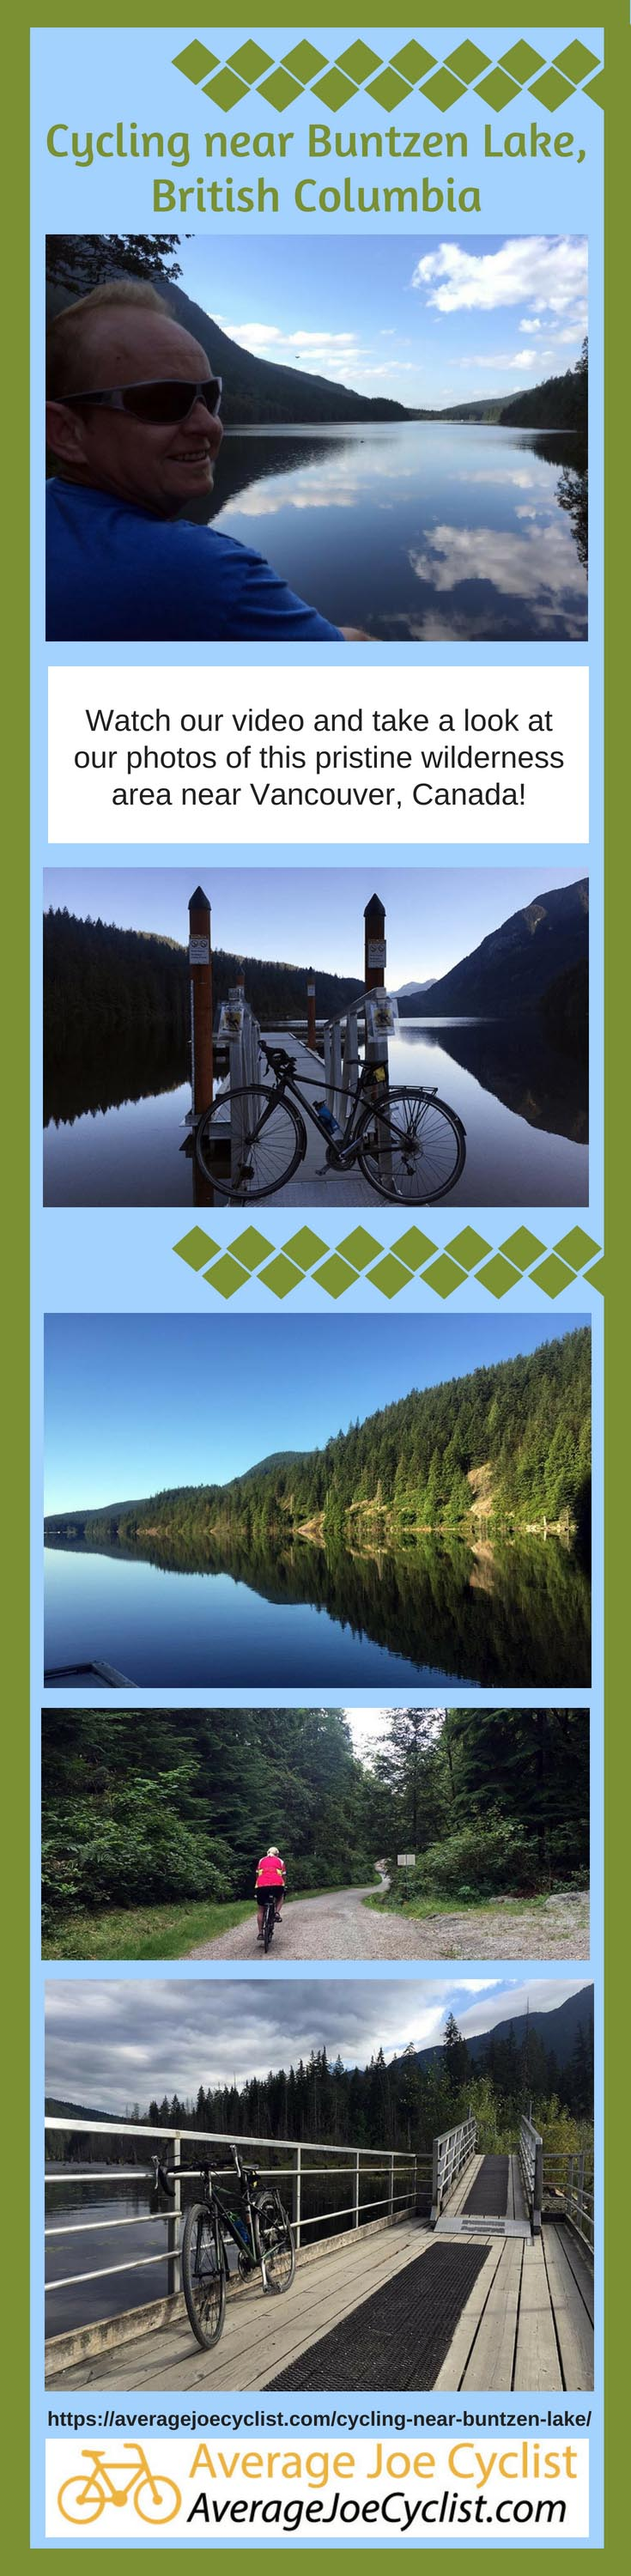 Cycling near Buntzen Lake, British Columbia, Canada